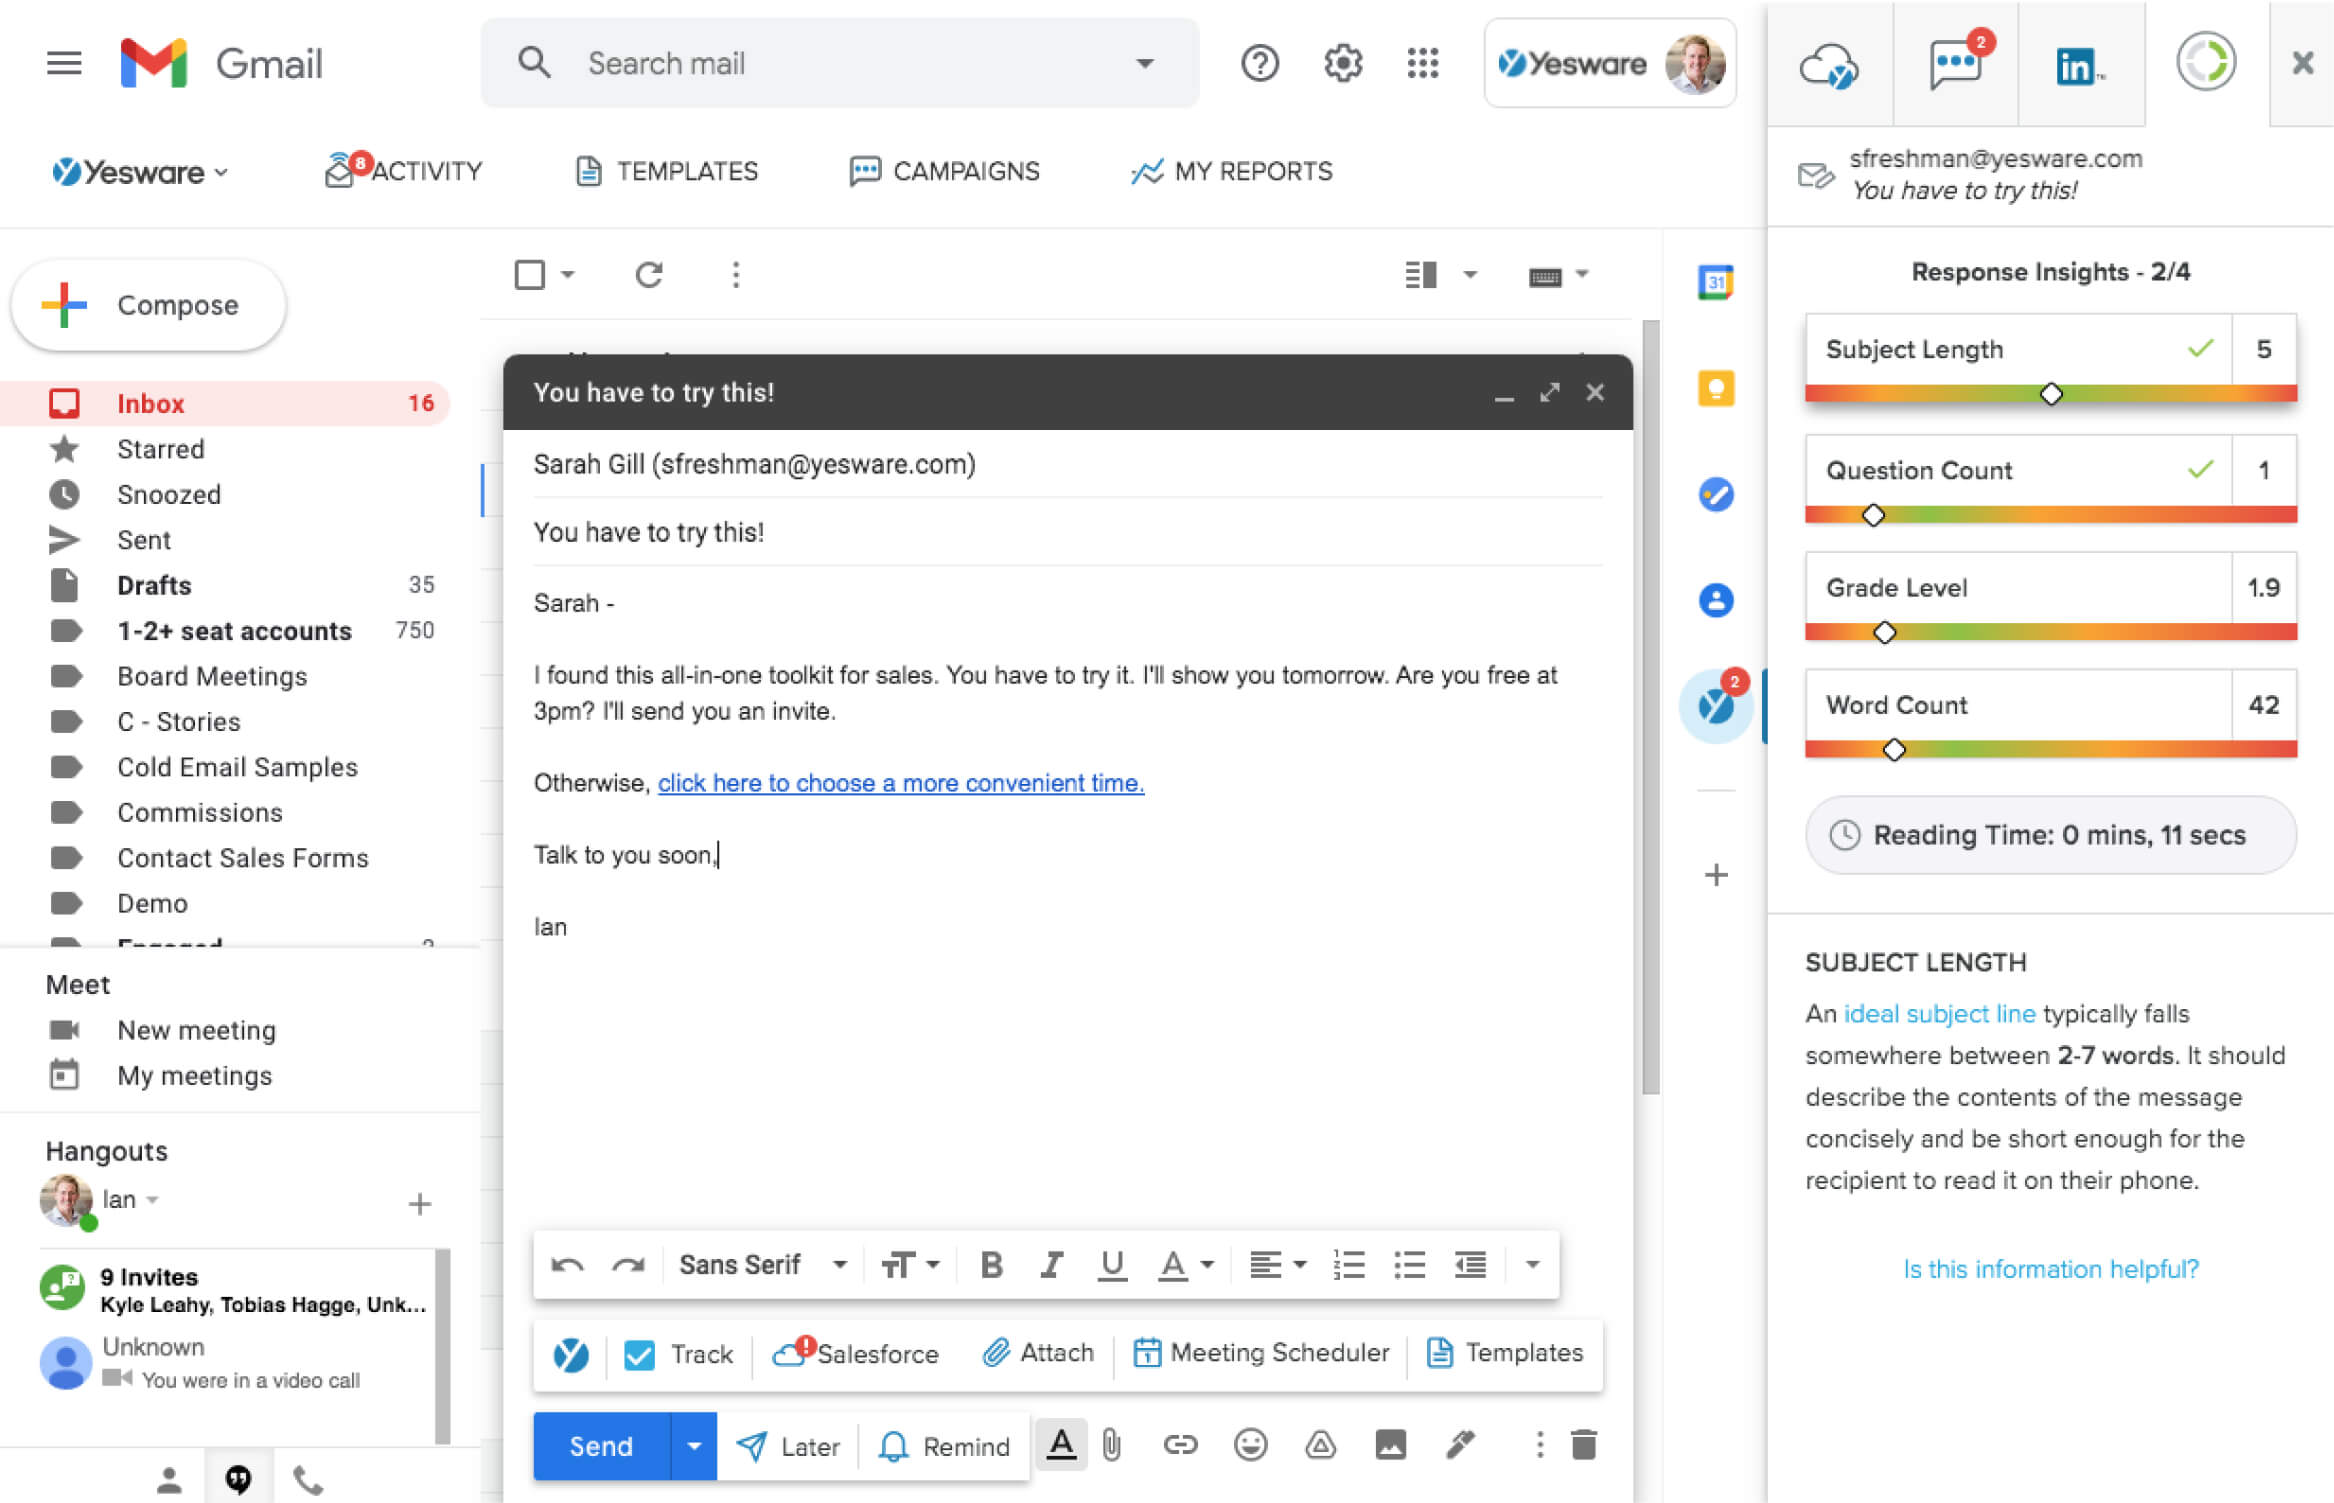 Yesware for Gmail